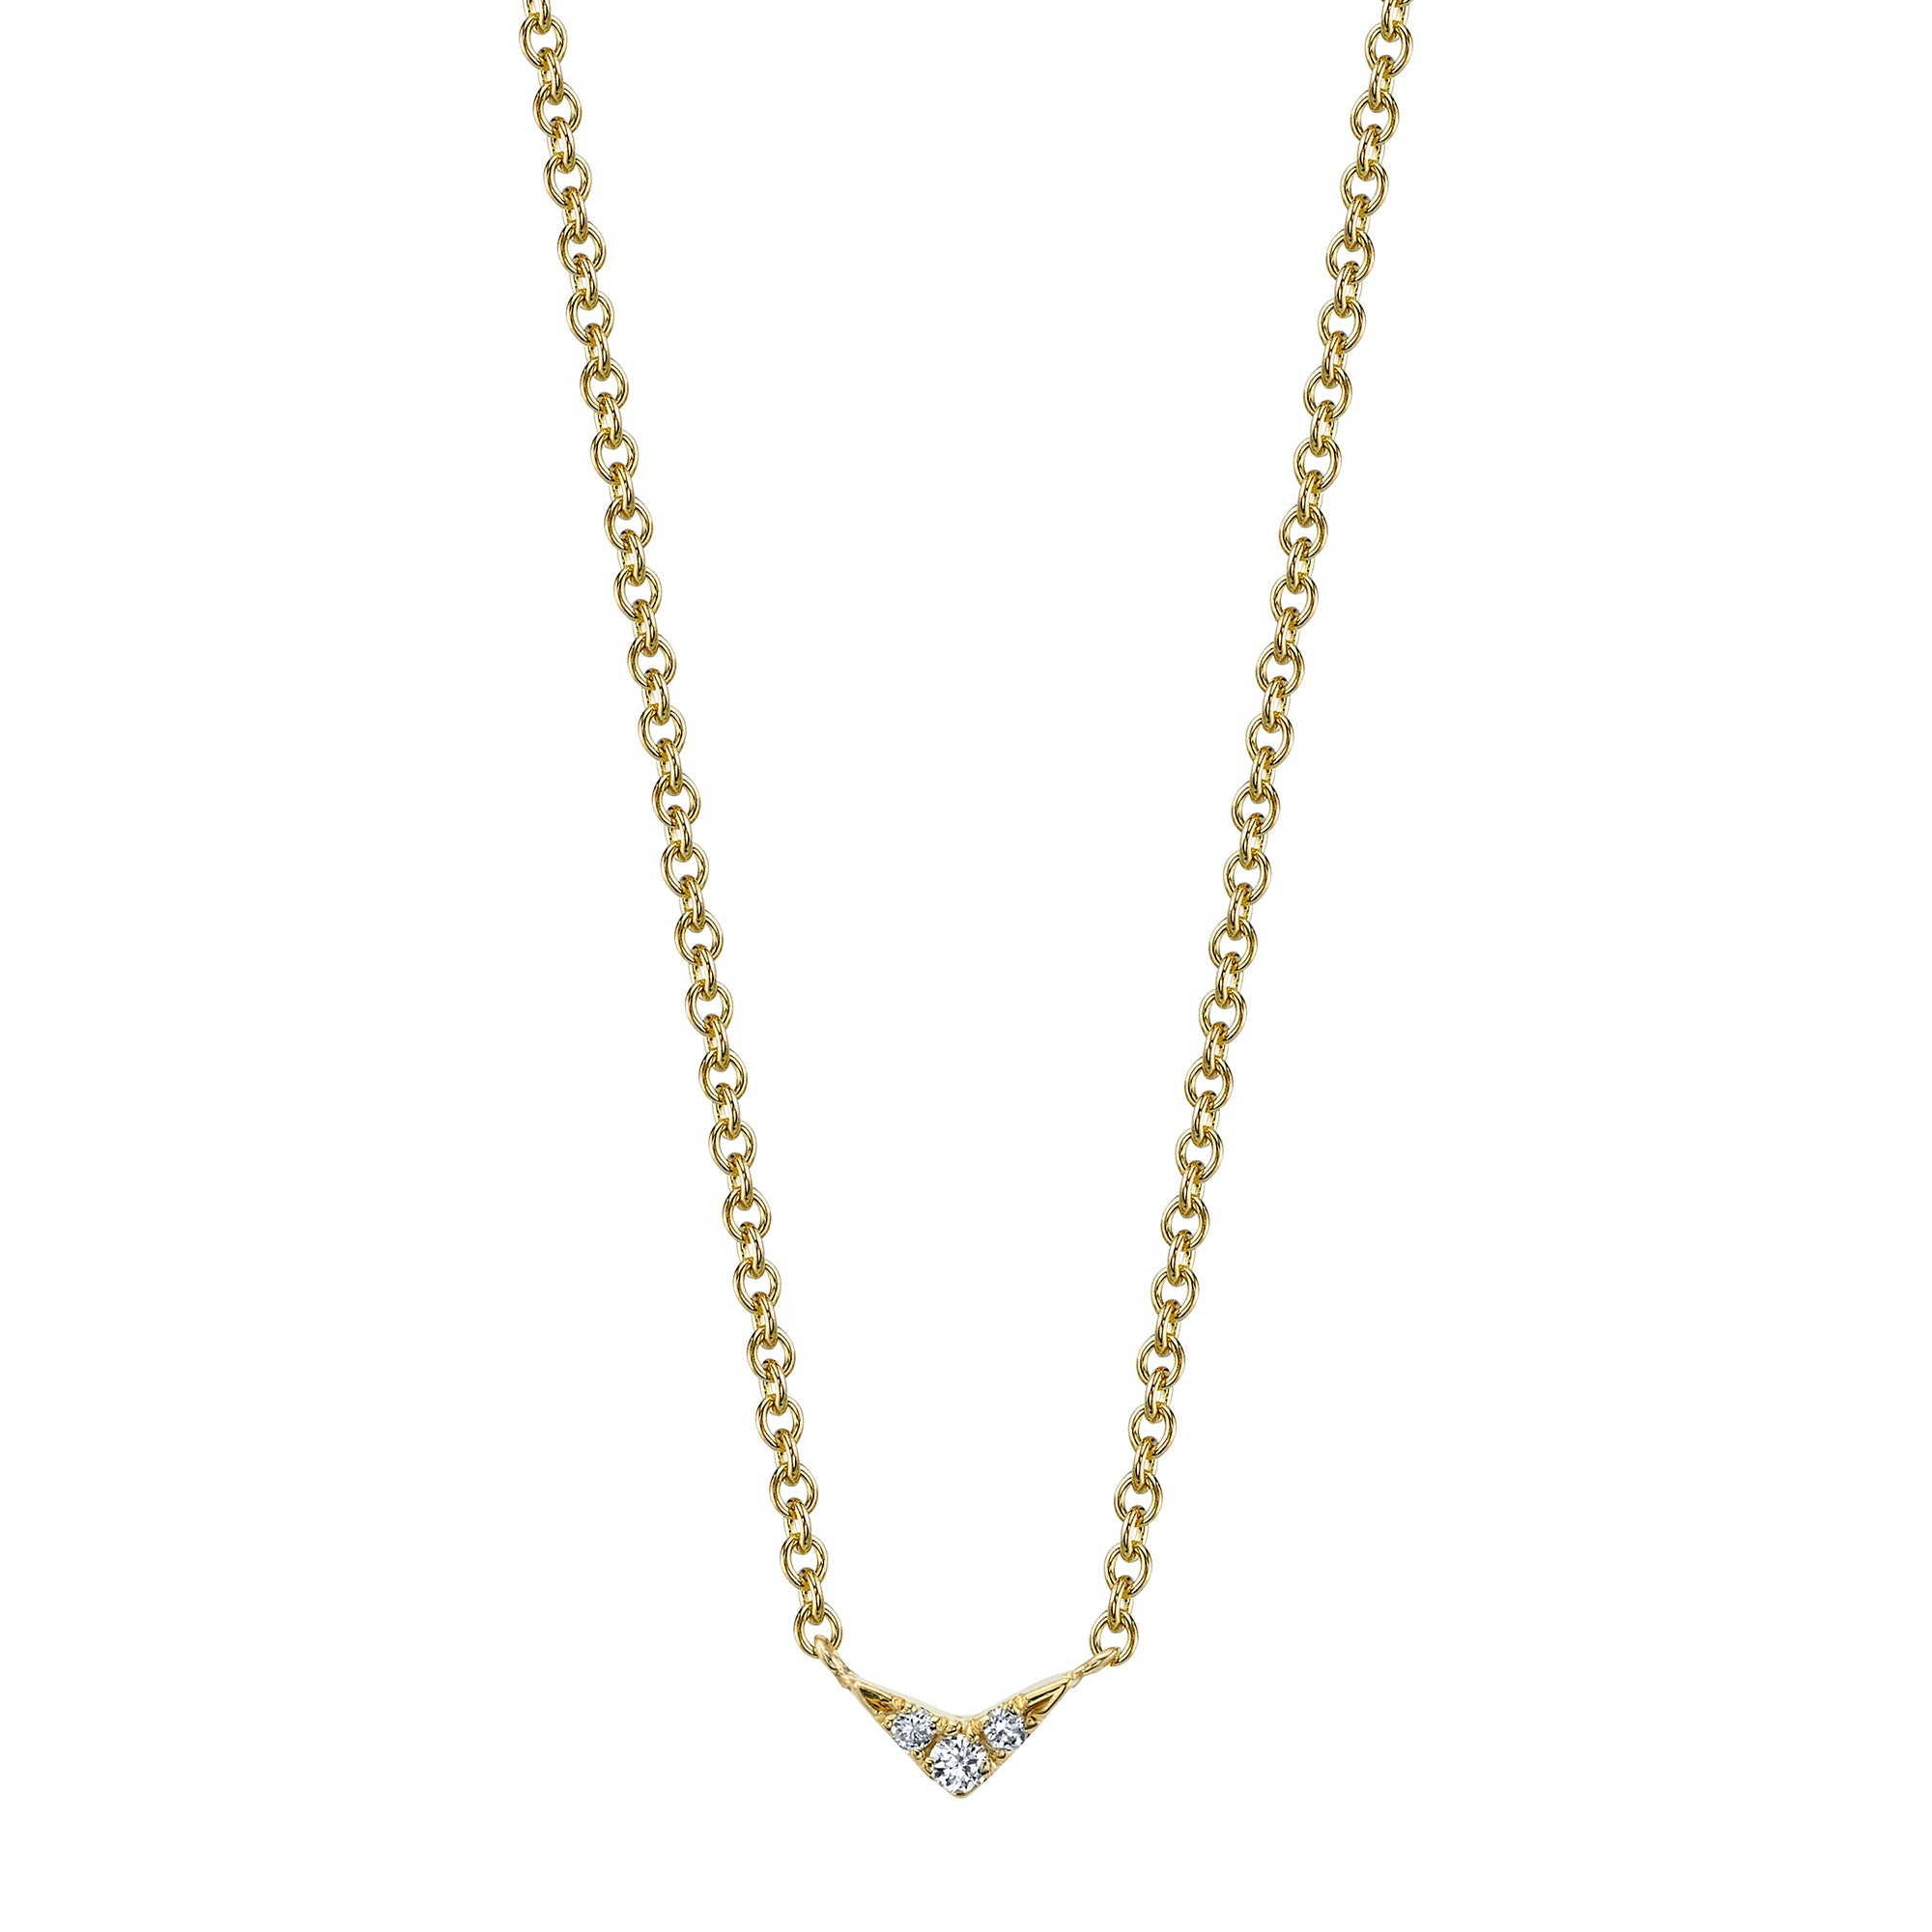 V Necklace by Lizzie Mandler for Broken English Jewelry